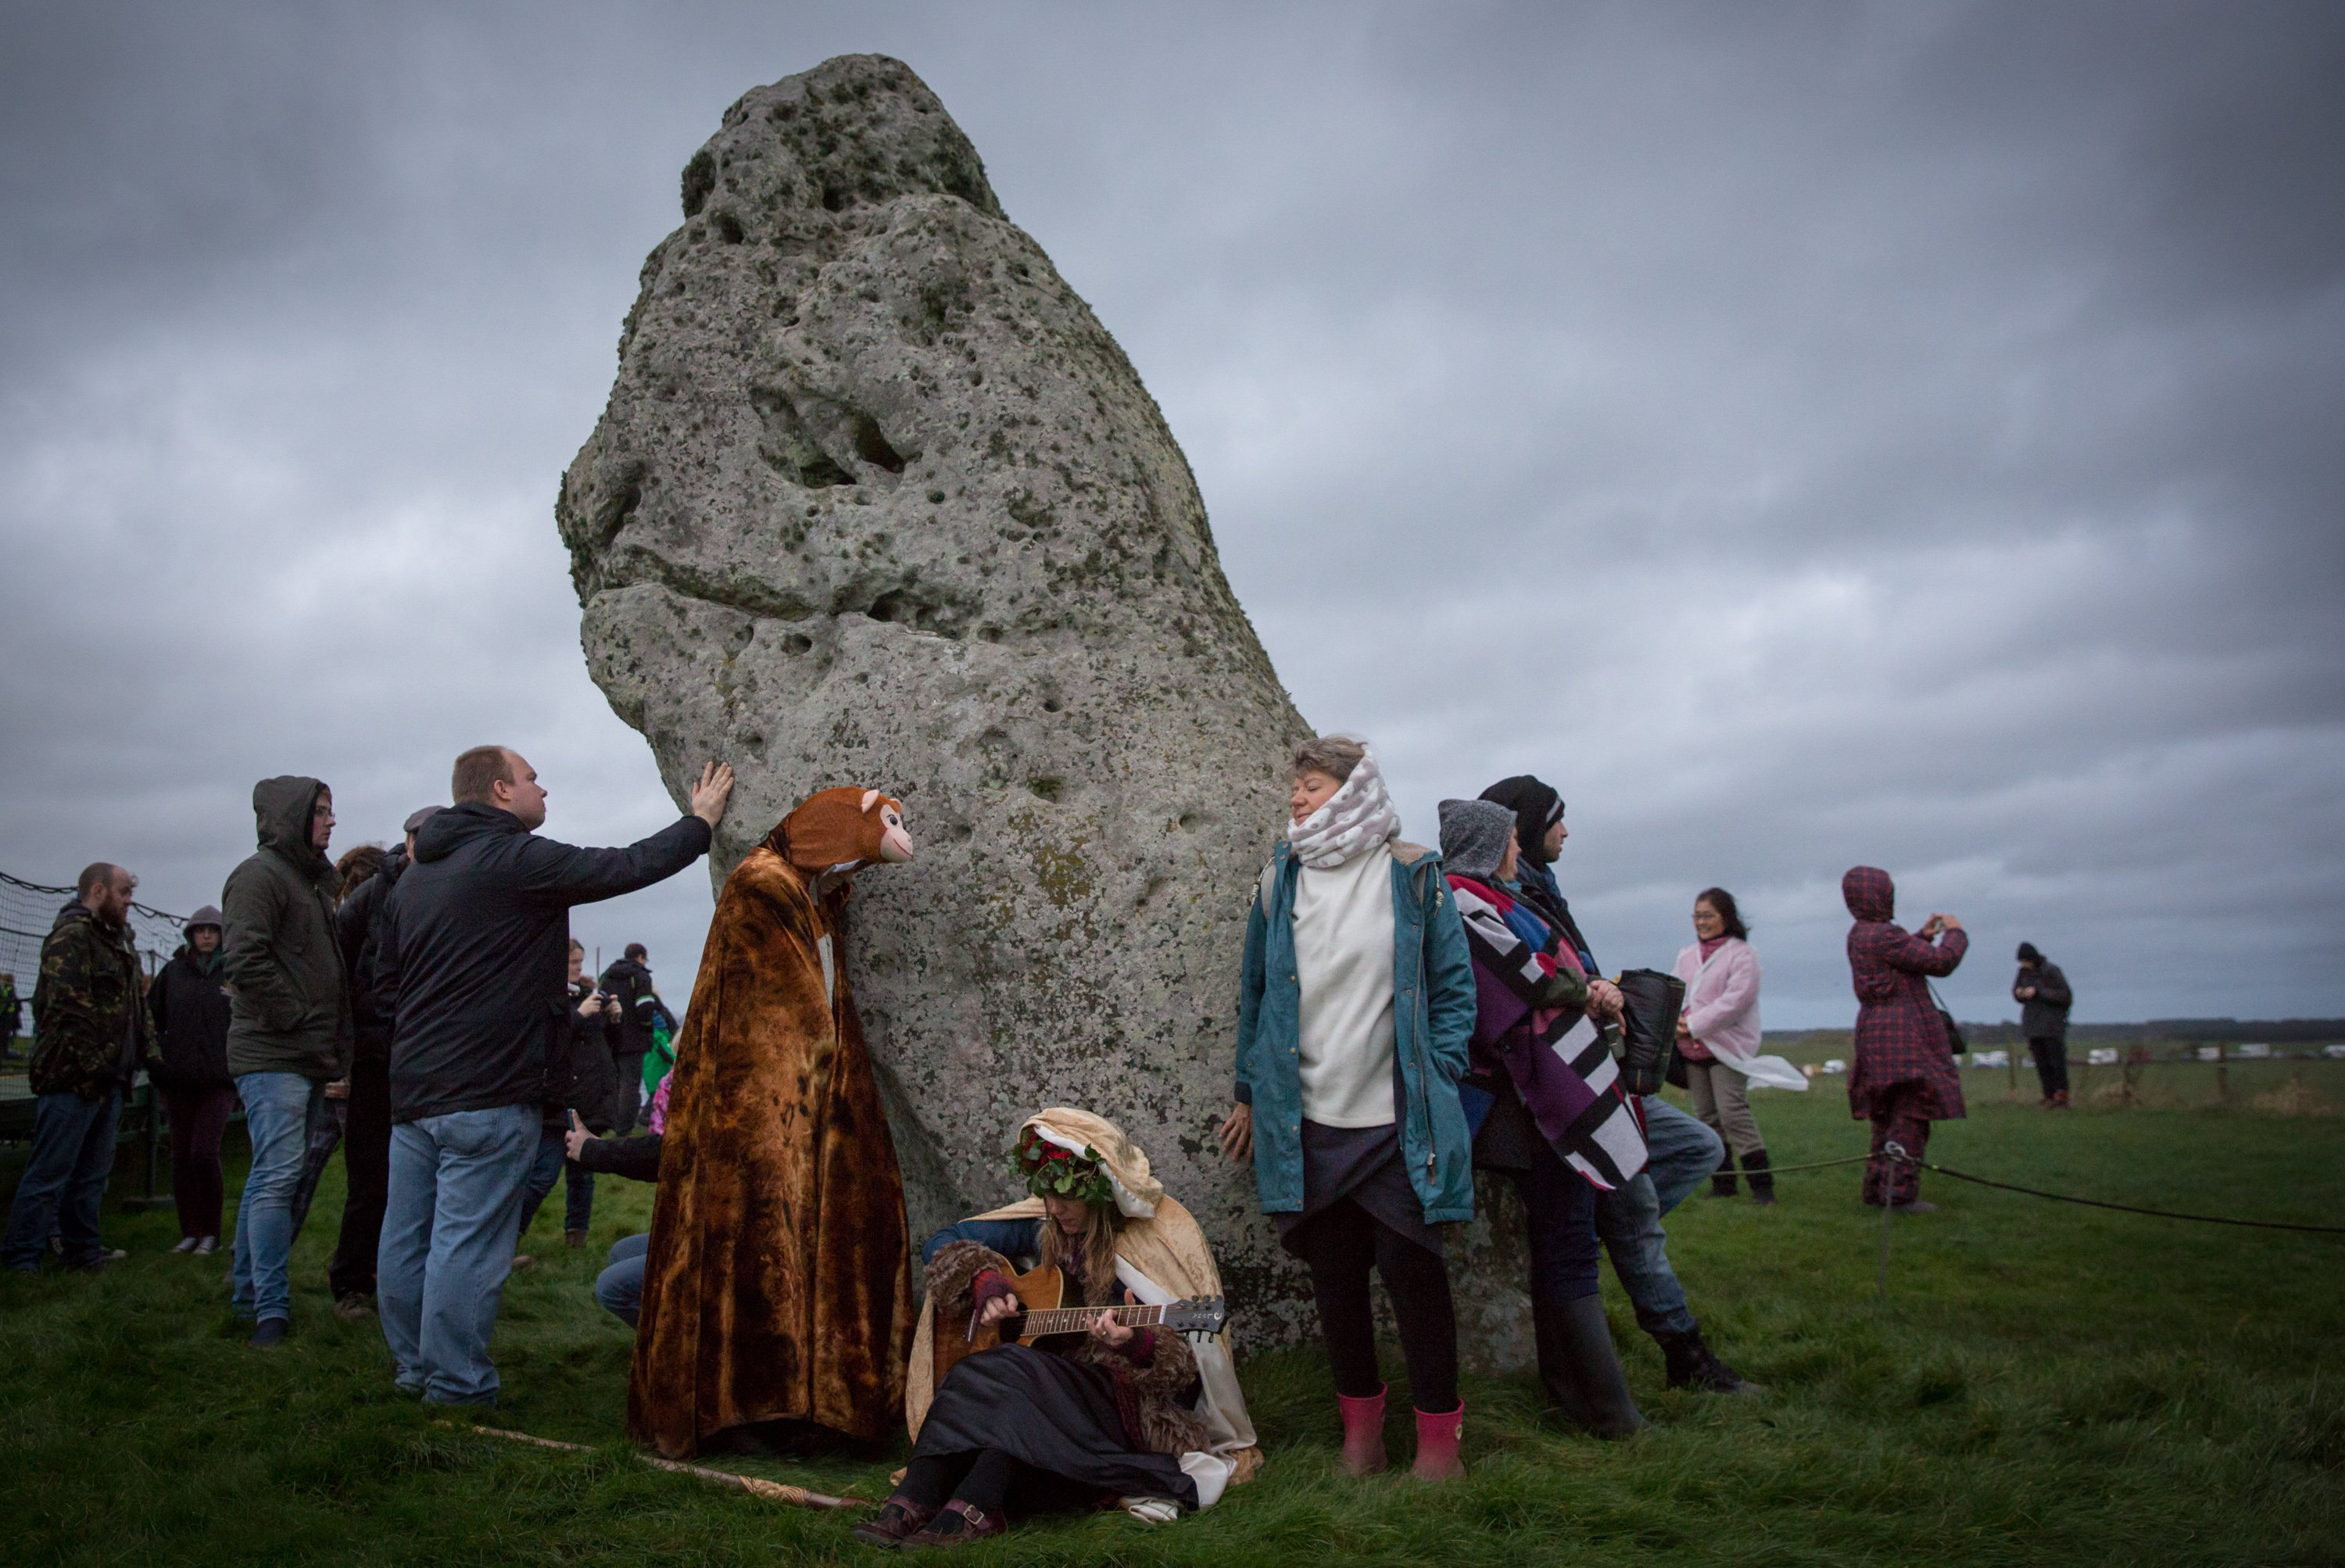 People gather at Stonehenge as they take part in a winter solstice ceremony on Dec. 22, 2015 in Wiltshire, England.